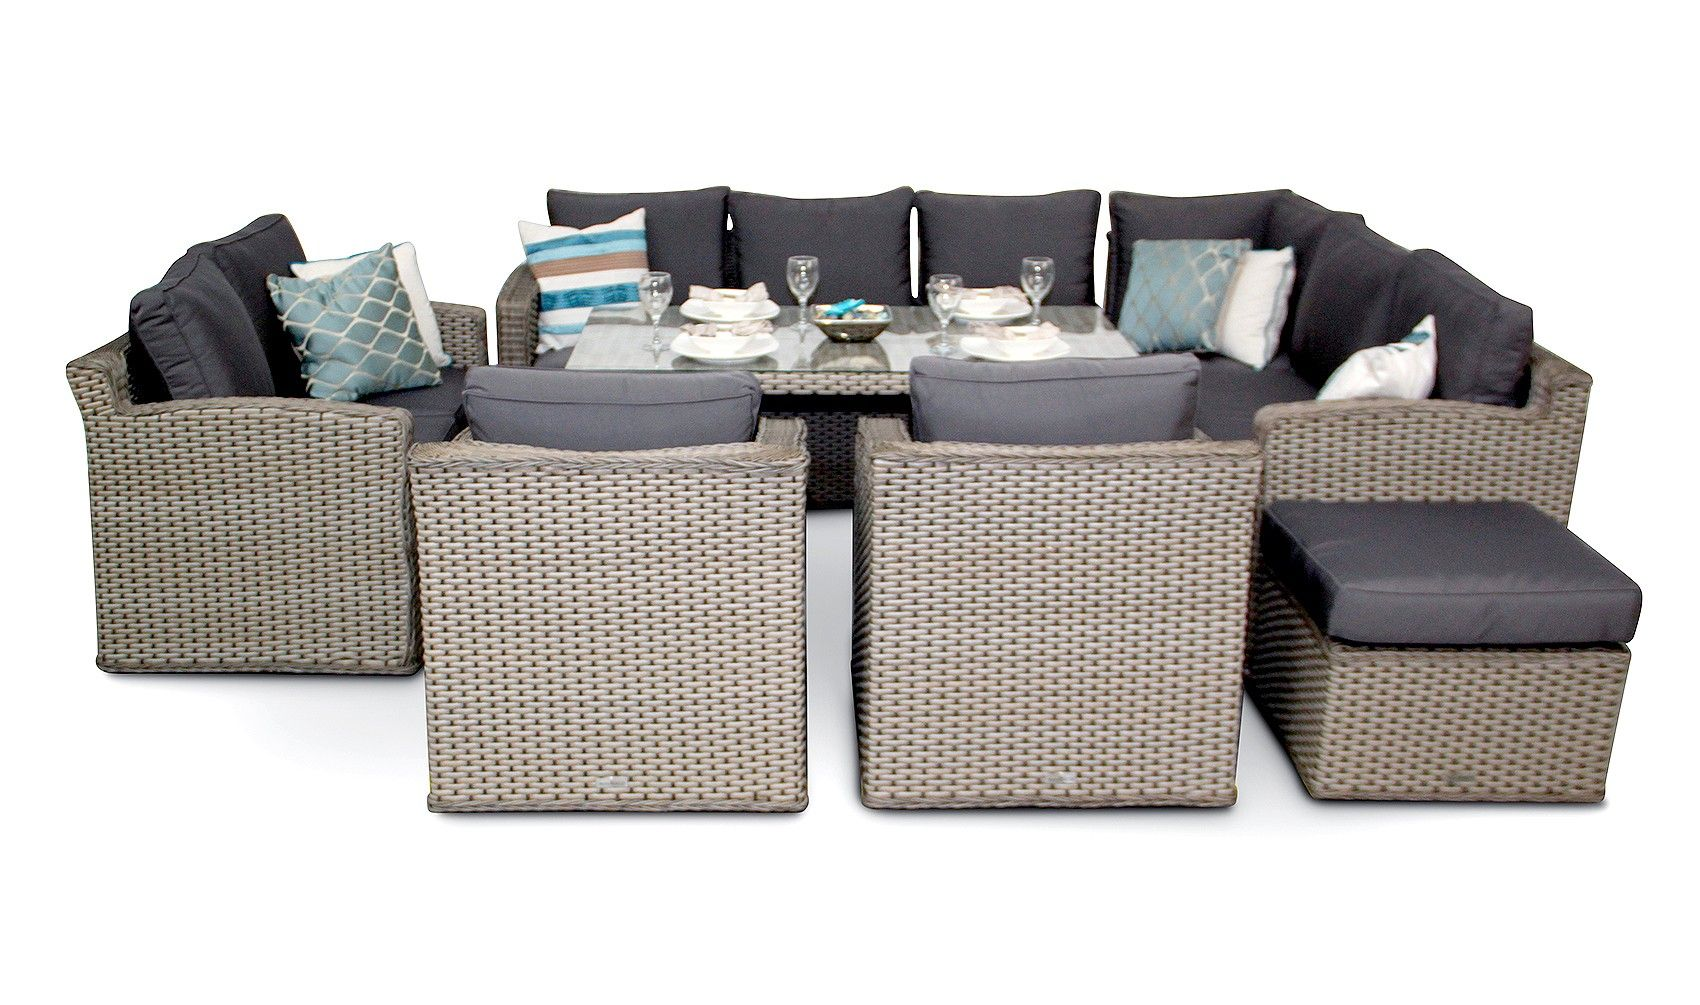 Groovy Grand Chelsea Rattan Outdoor Sofa Dining Set Whitewash Inzonedesignstudio Interior Chair Design Inzonedesignstudiocom